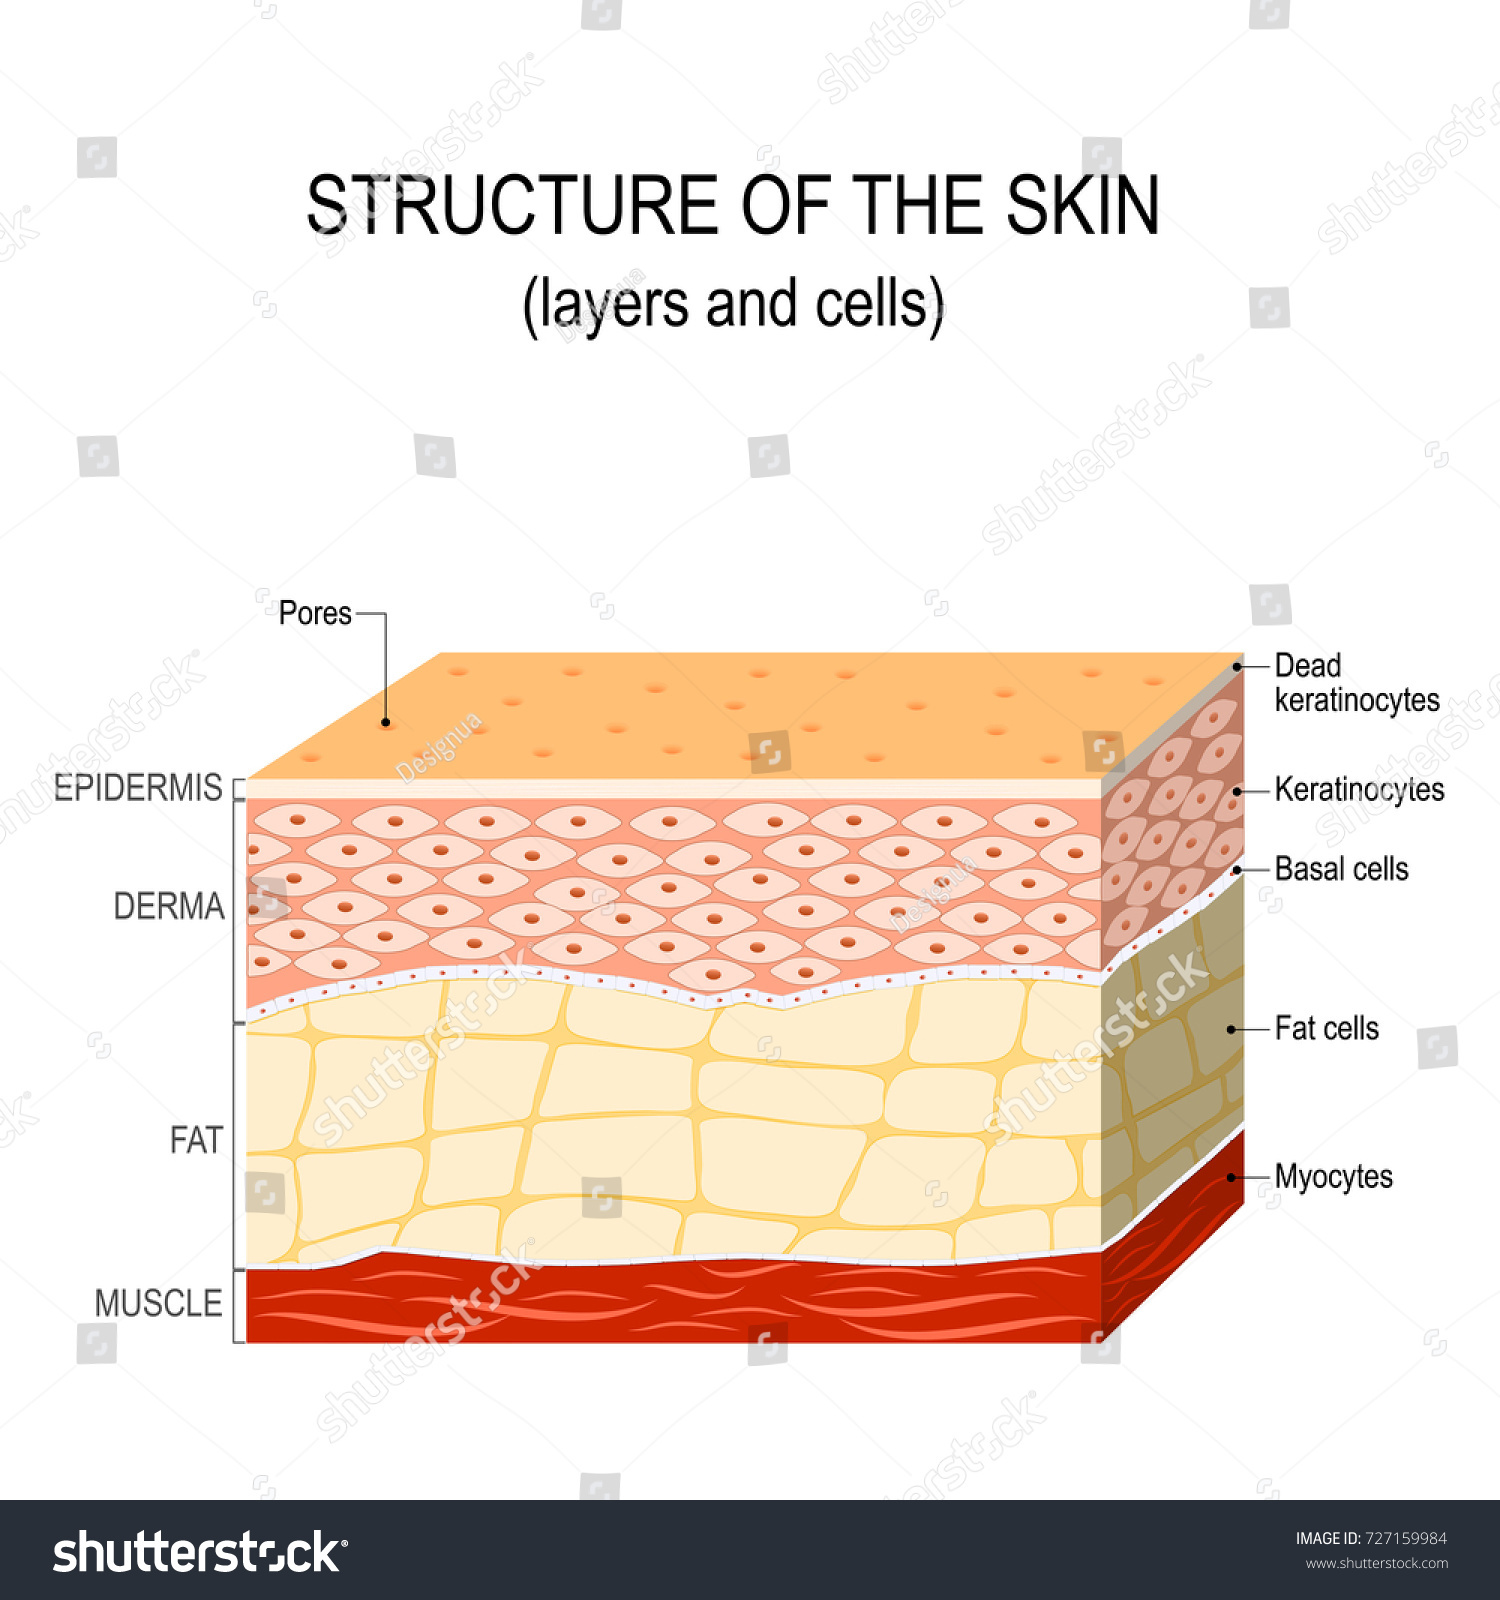 Structure Human Skin Layers Cells Stock Vector Royalty Free